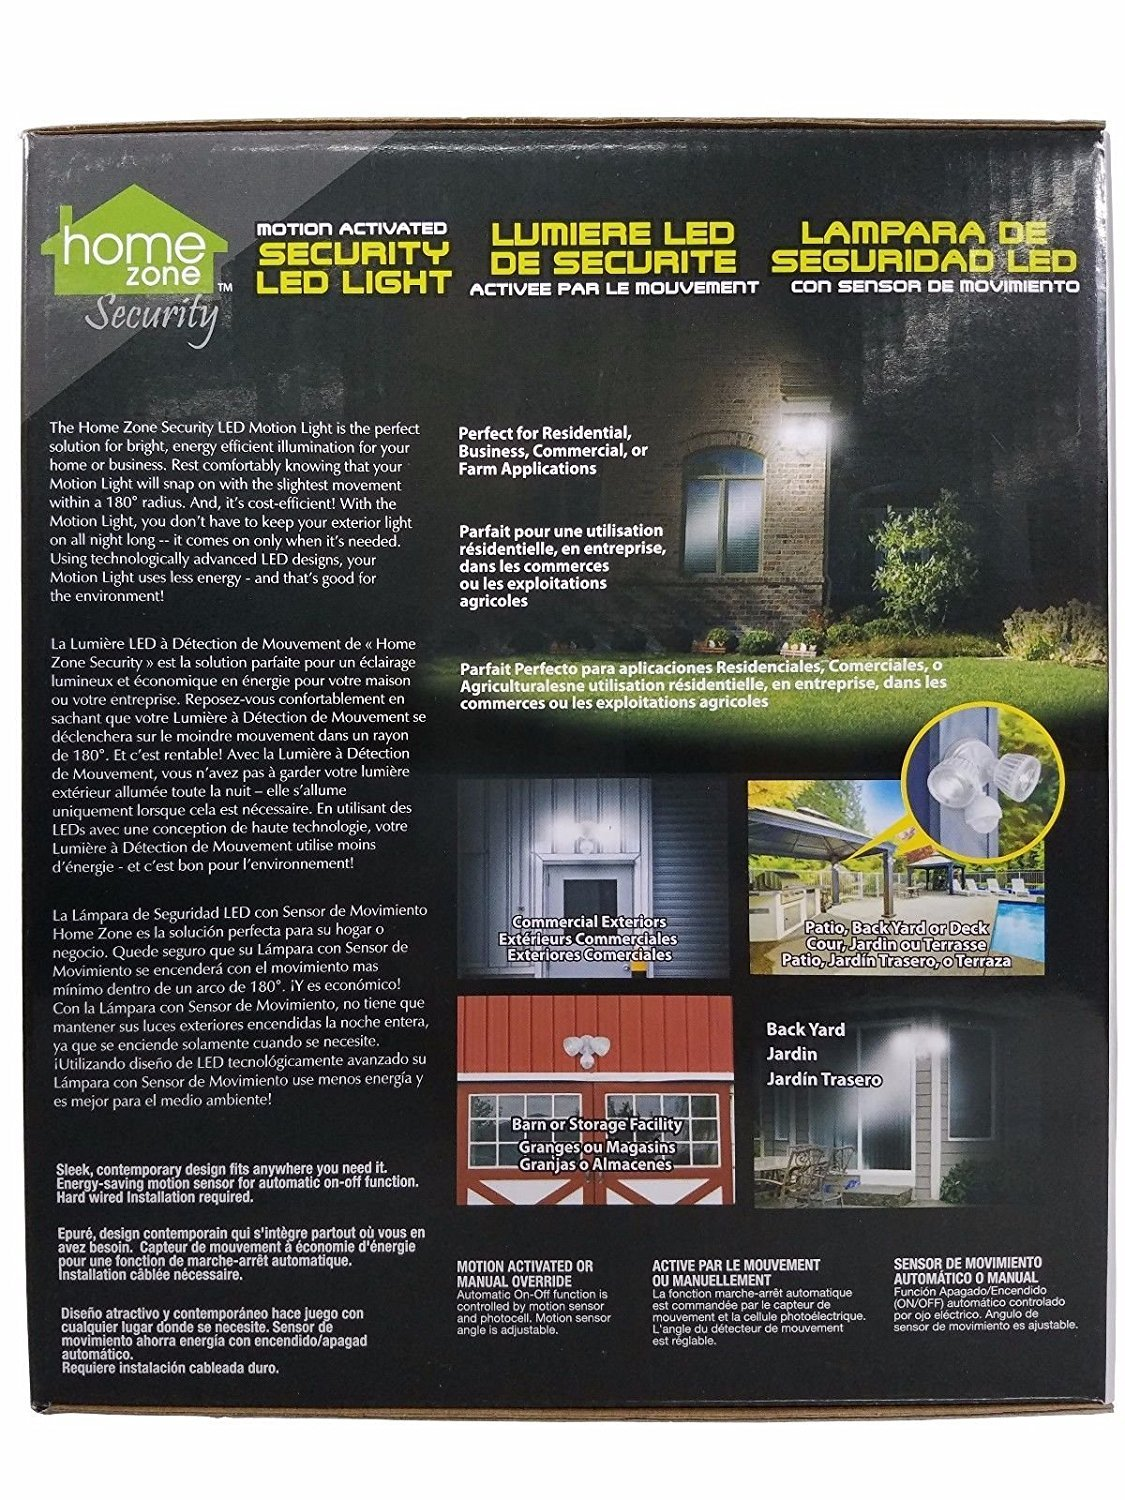 Home Zone Motion Activated LED Security Light - 2500 Lumens ...